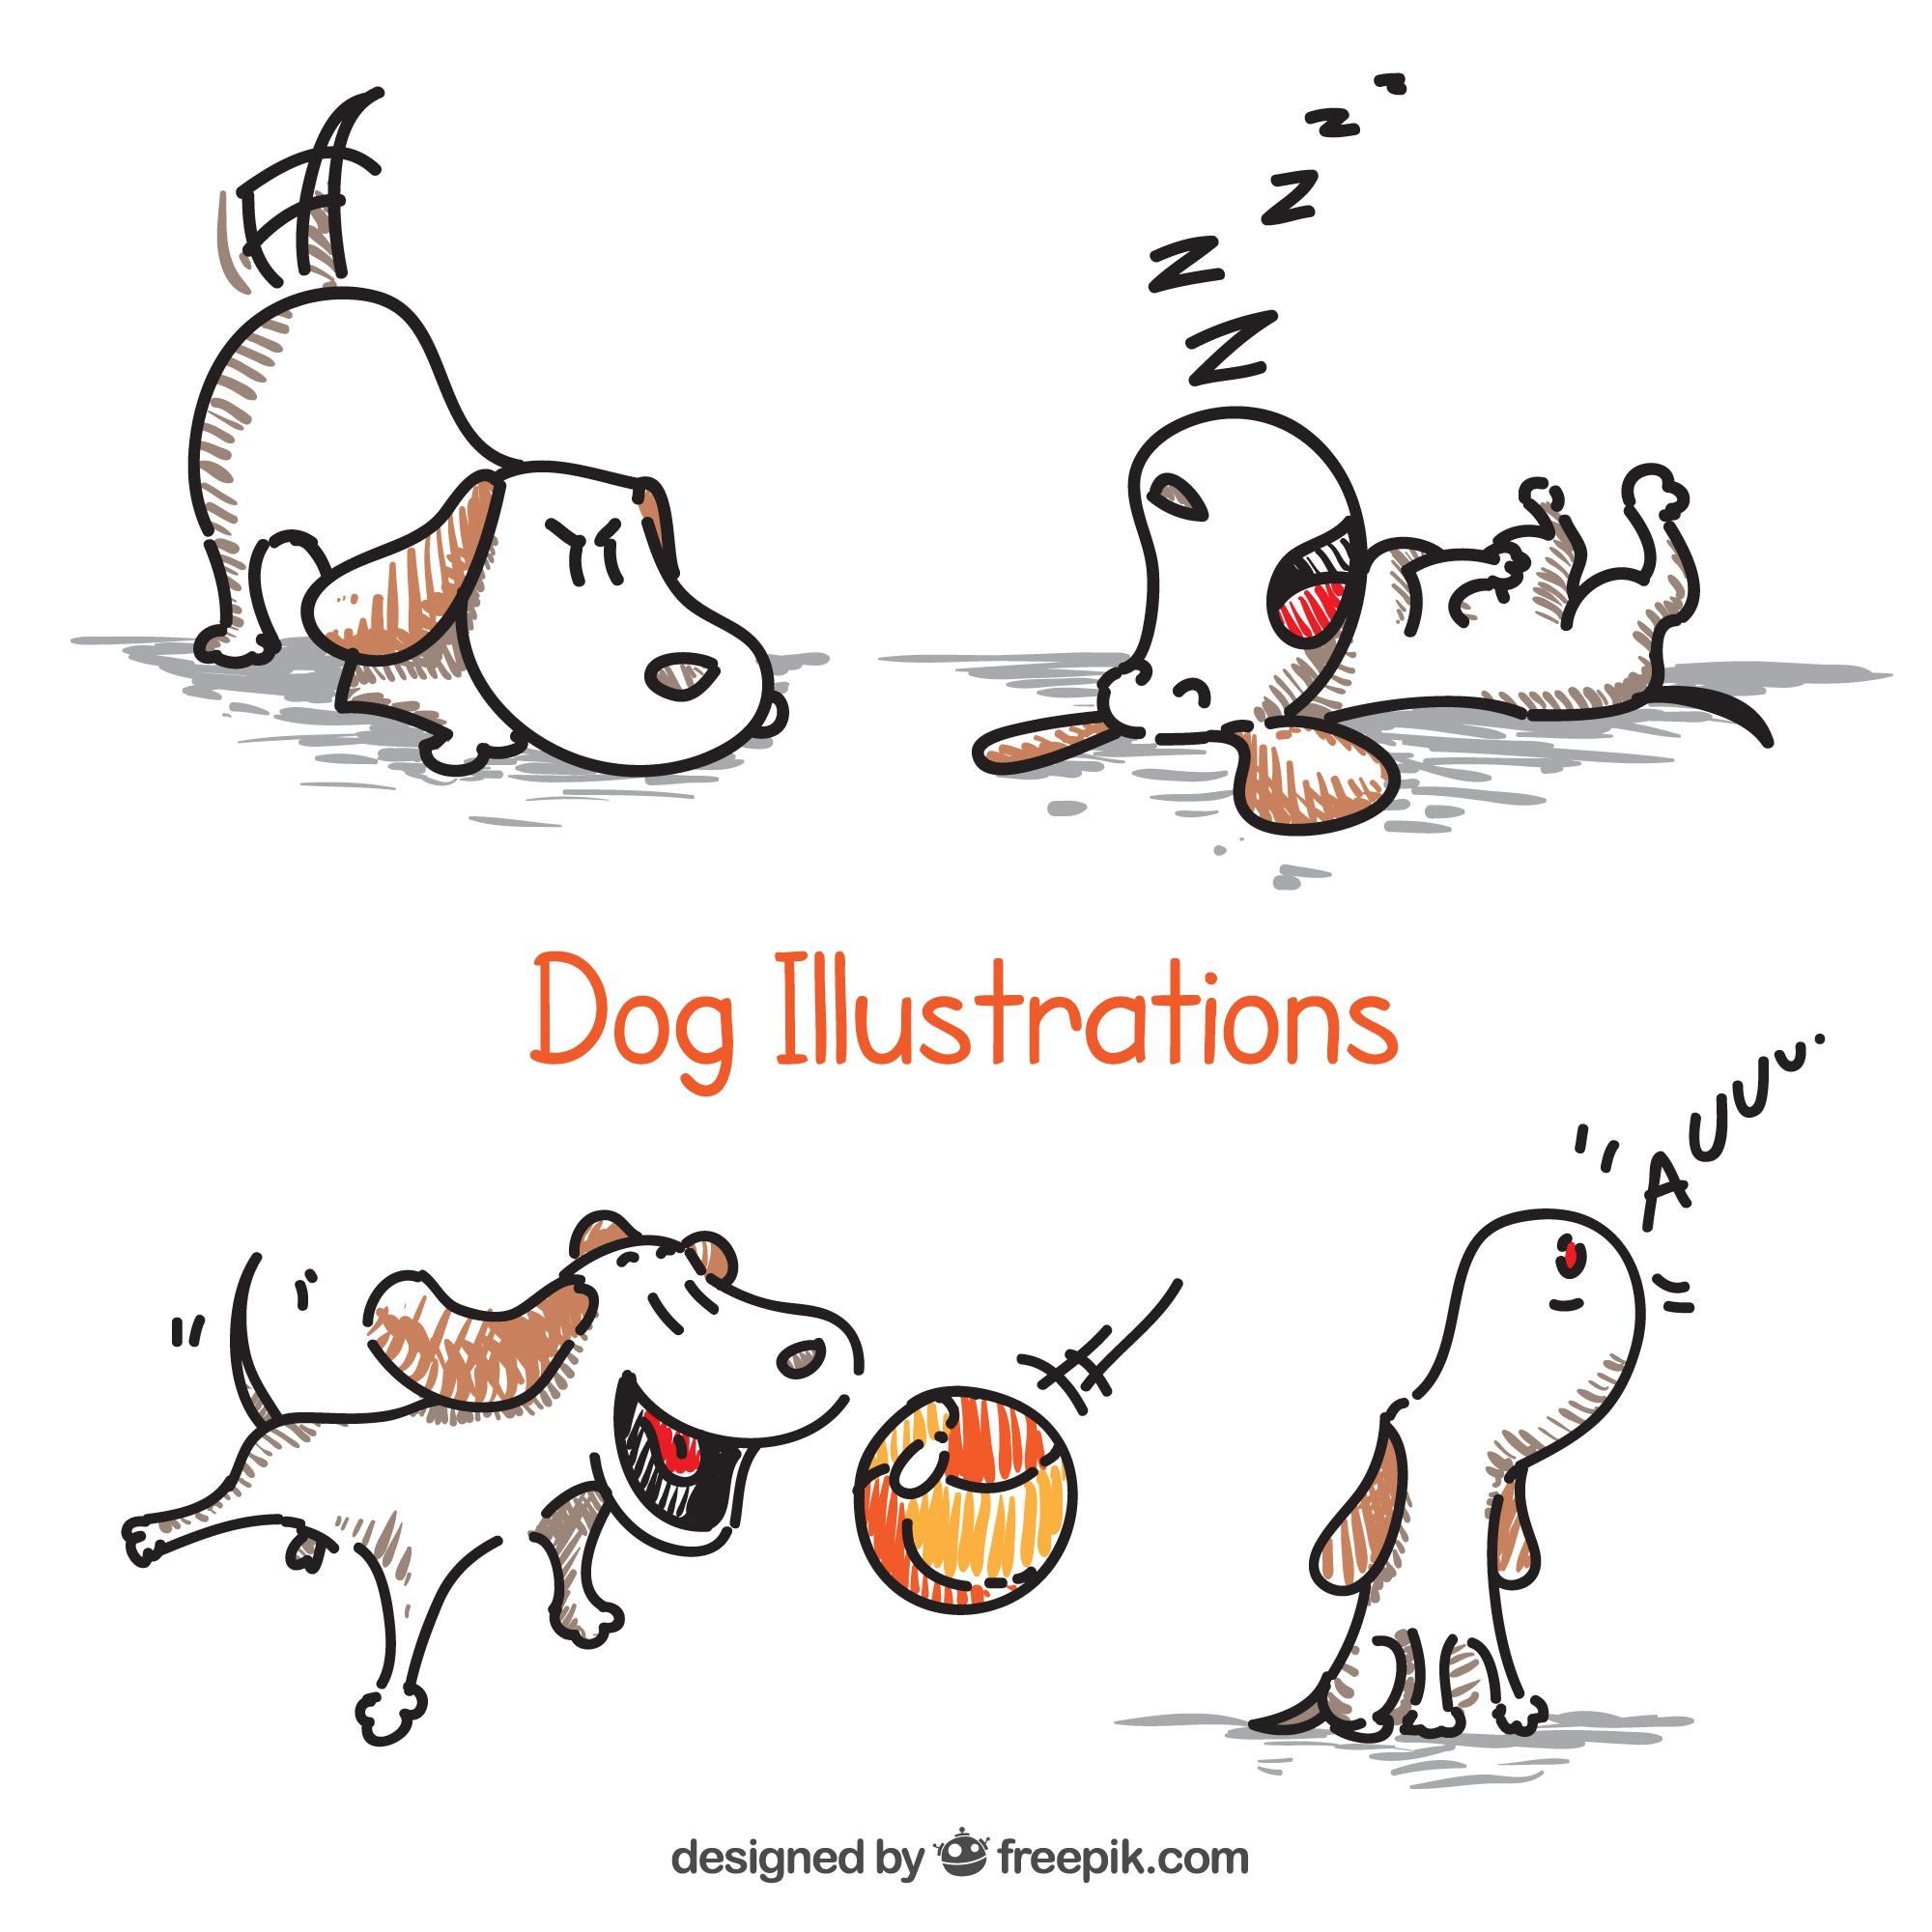 Dessinés à la main illustrations de chiens